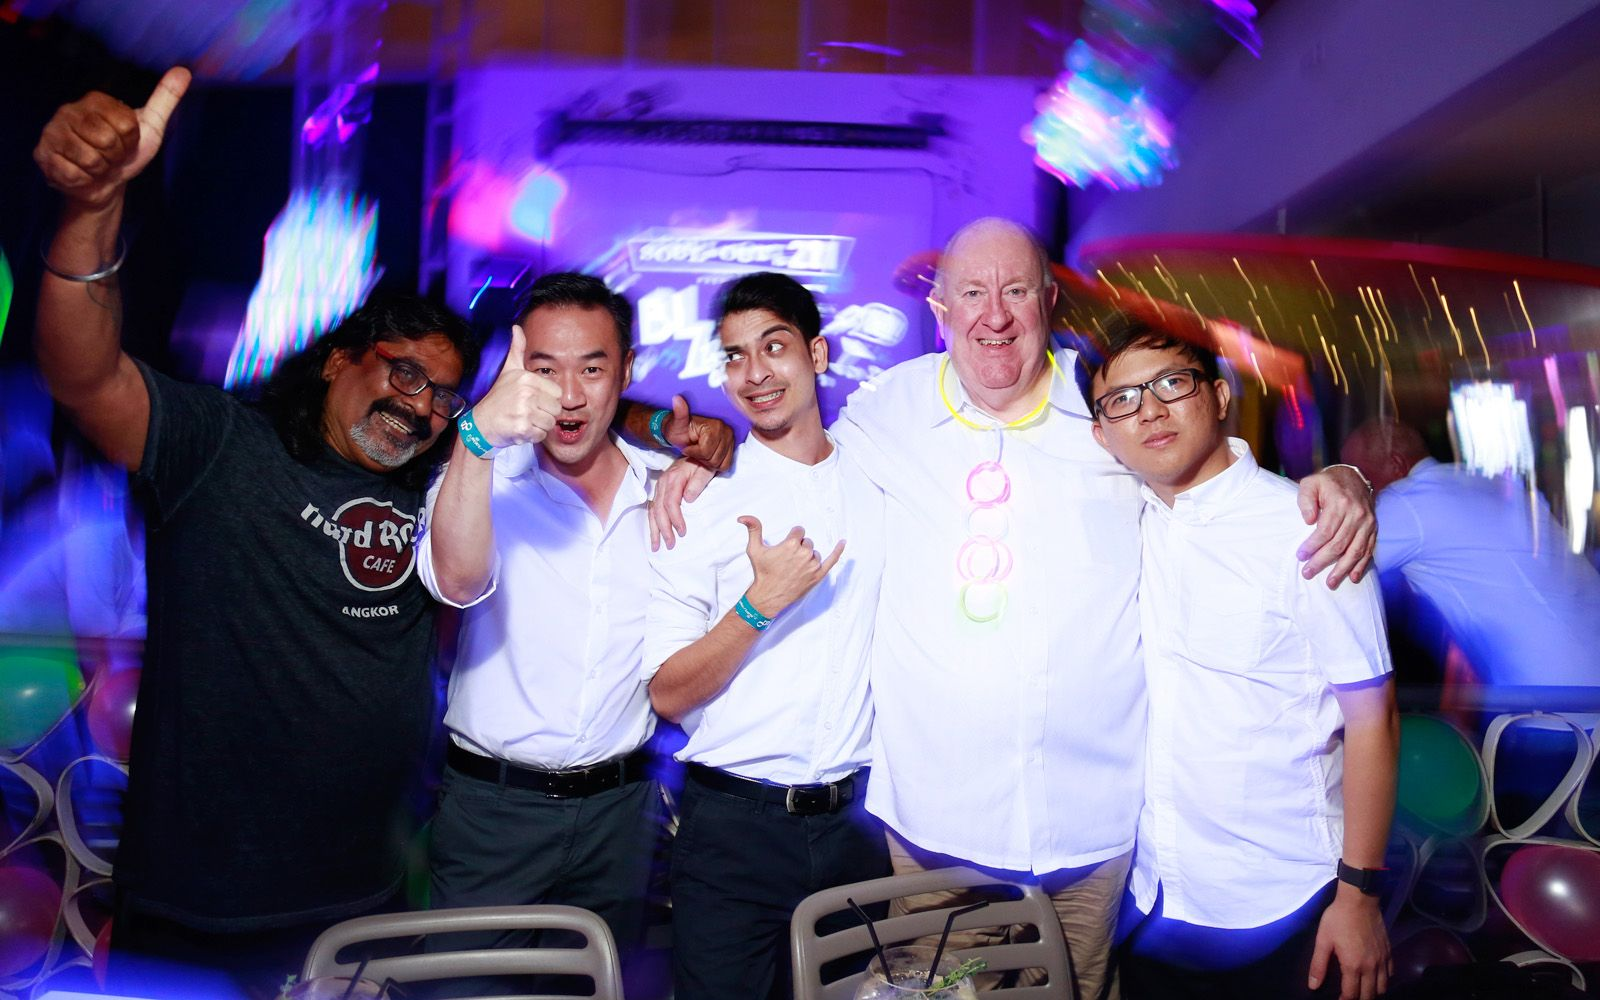 Rai Krish, Jeremy Kow, Slim Nazari, Wayne Kline and Deric Lee